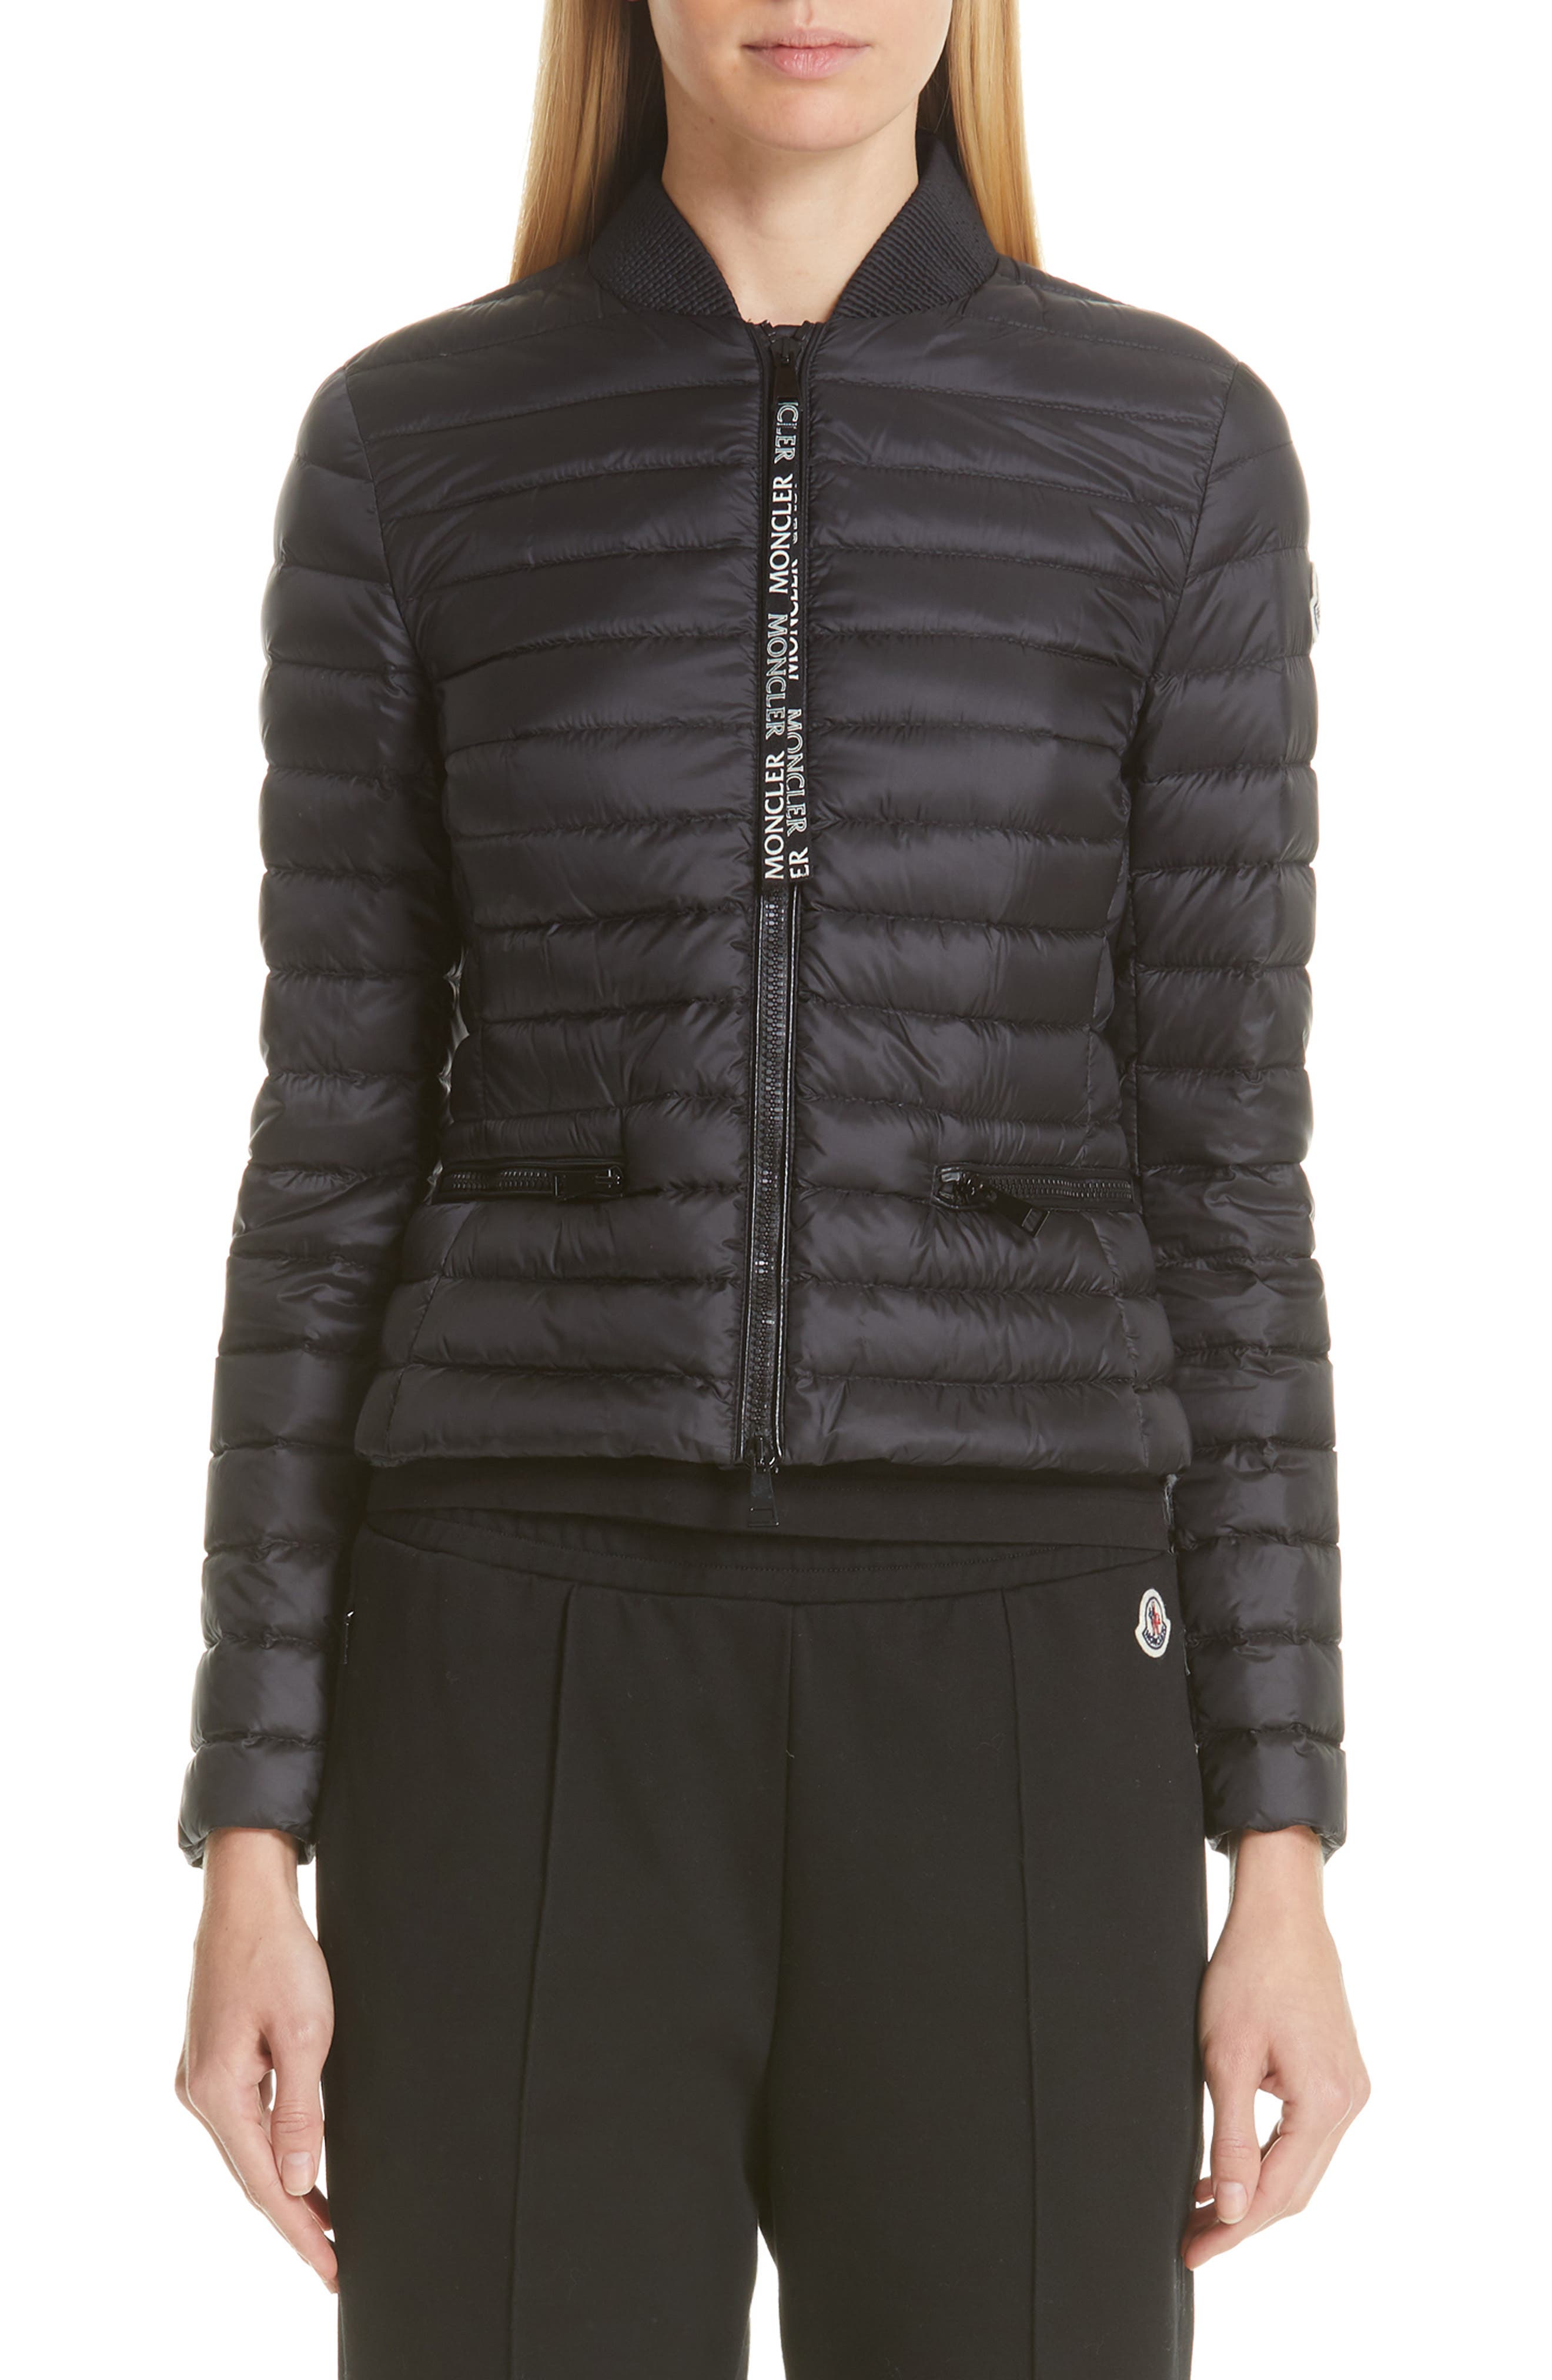 MONCLER, Blenca Quilted Down Jacket, Main thumbnail 1, color, BLACK